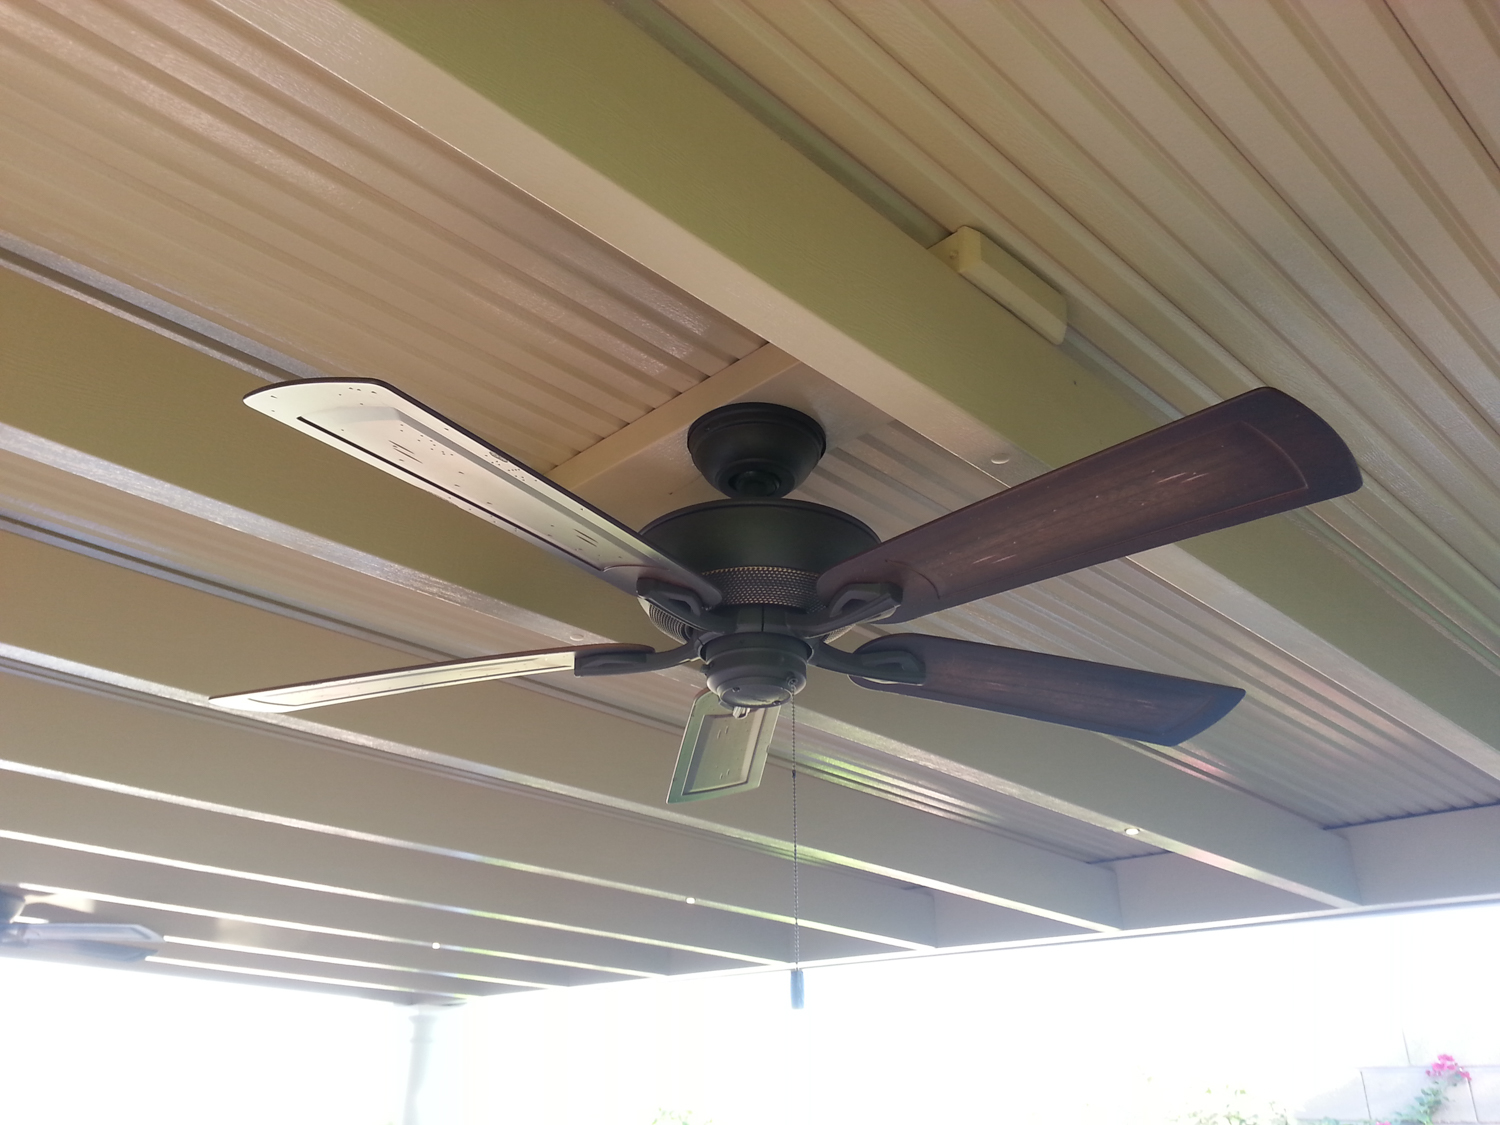 patio-cover-fan